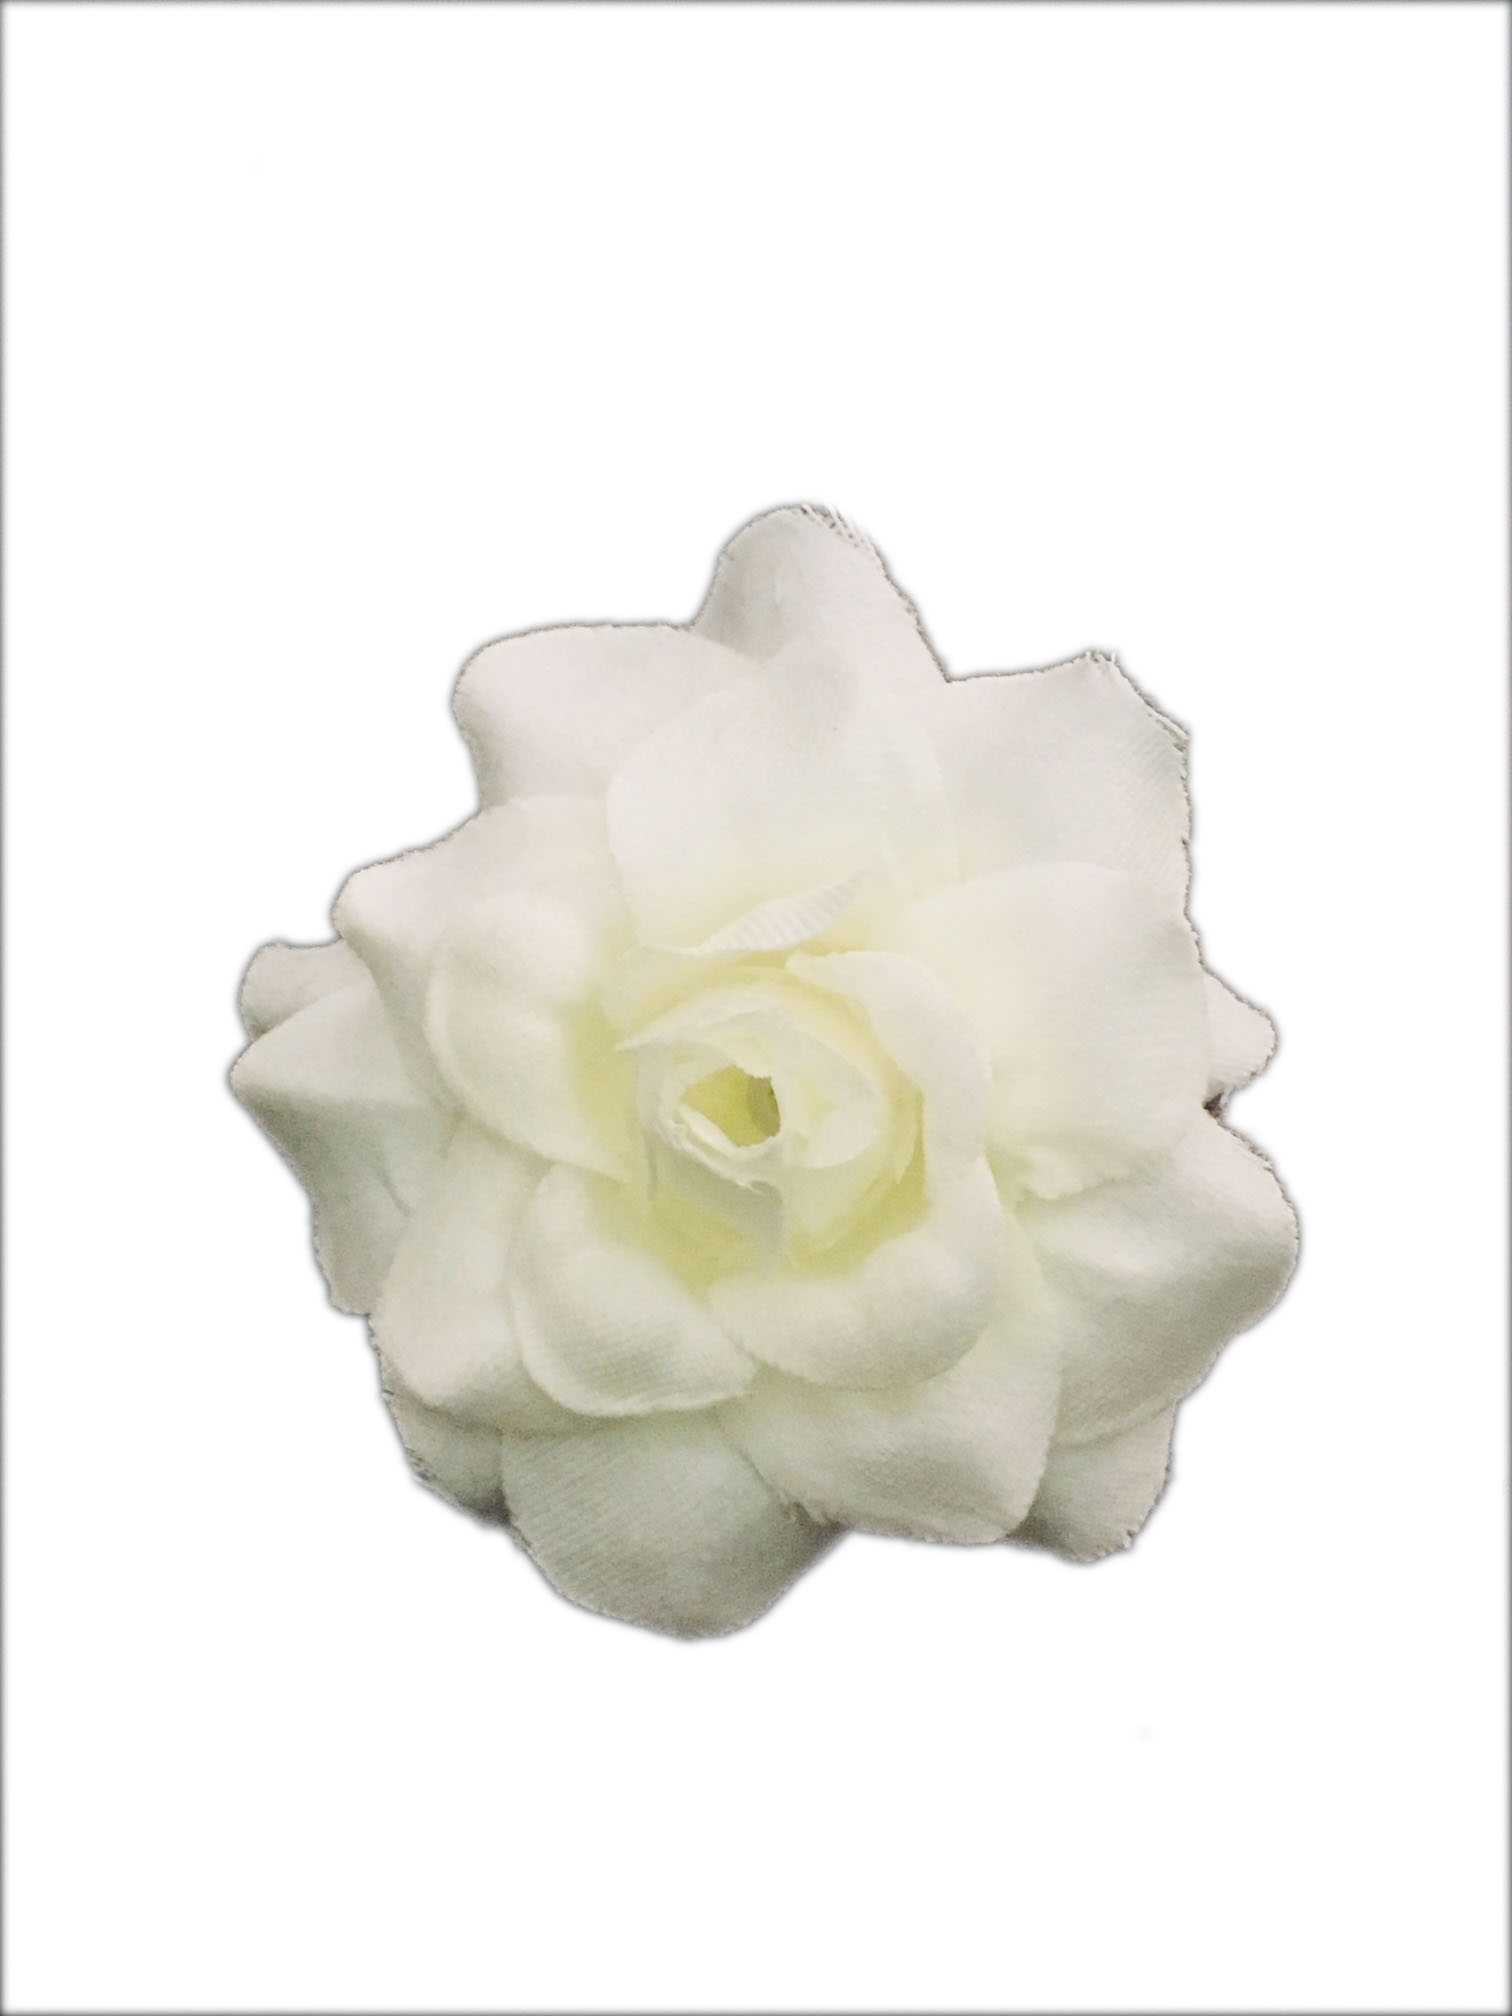 SPAZIES 2 INCHES ARTIFICIAL FLOWER DECORATIVE ROSES (100) PIECES PER PACKET